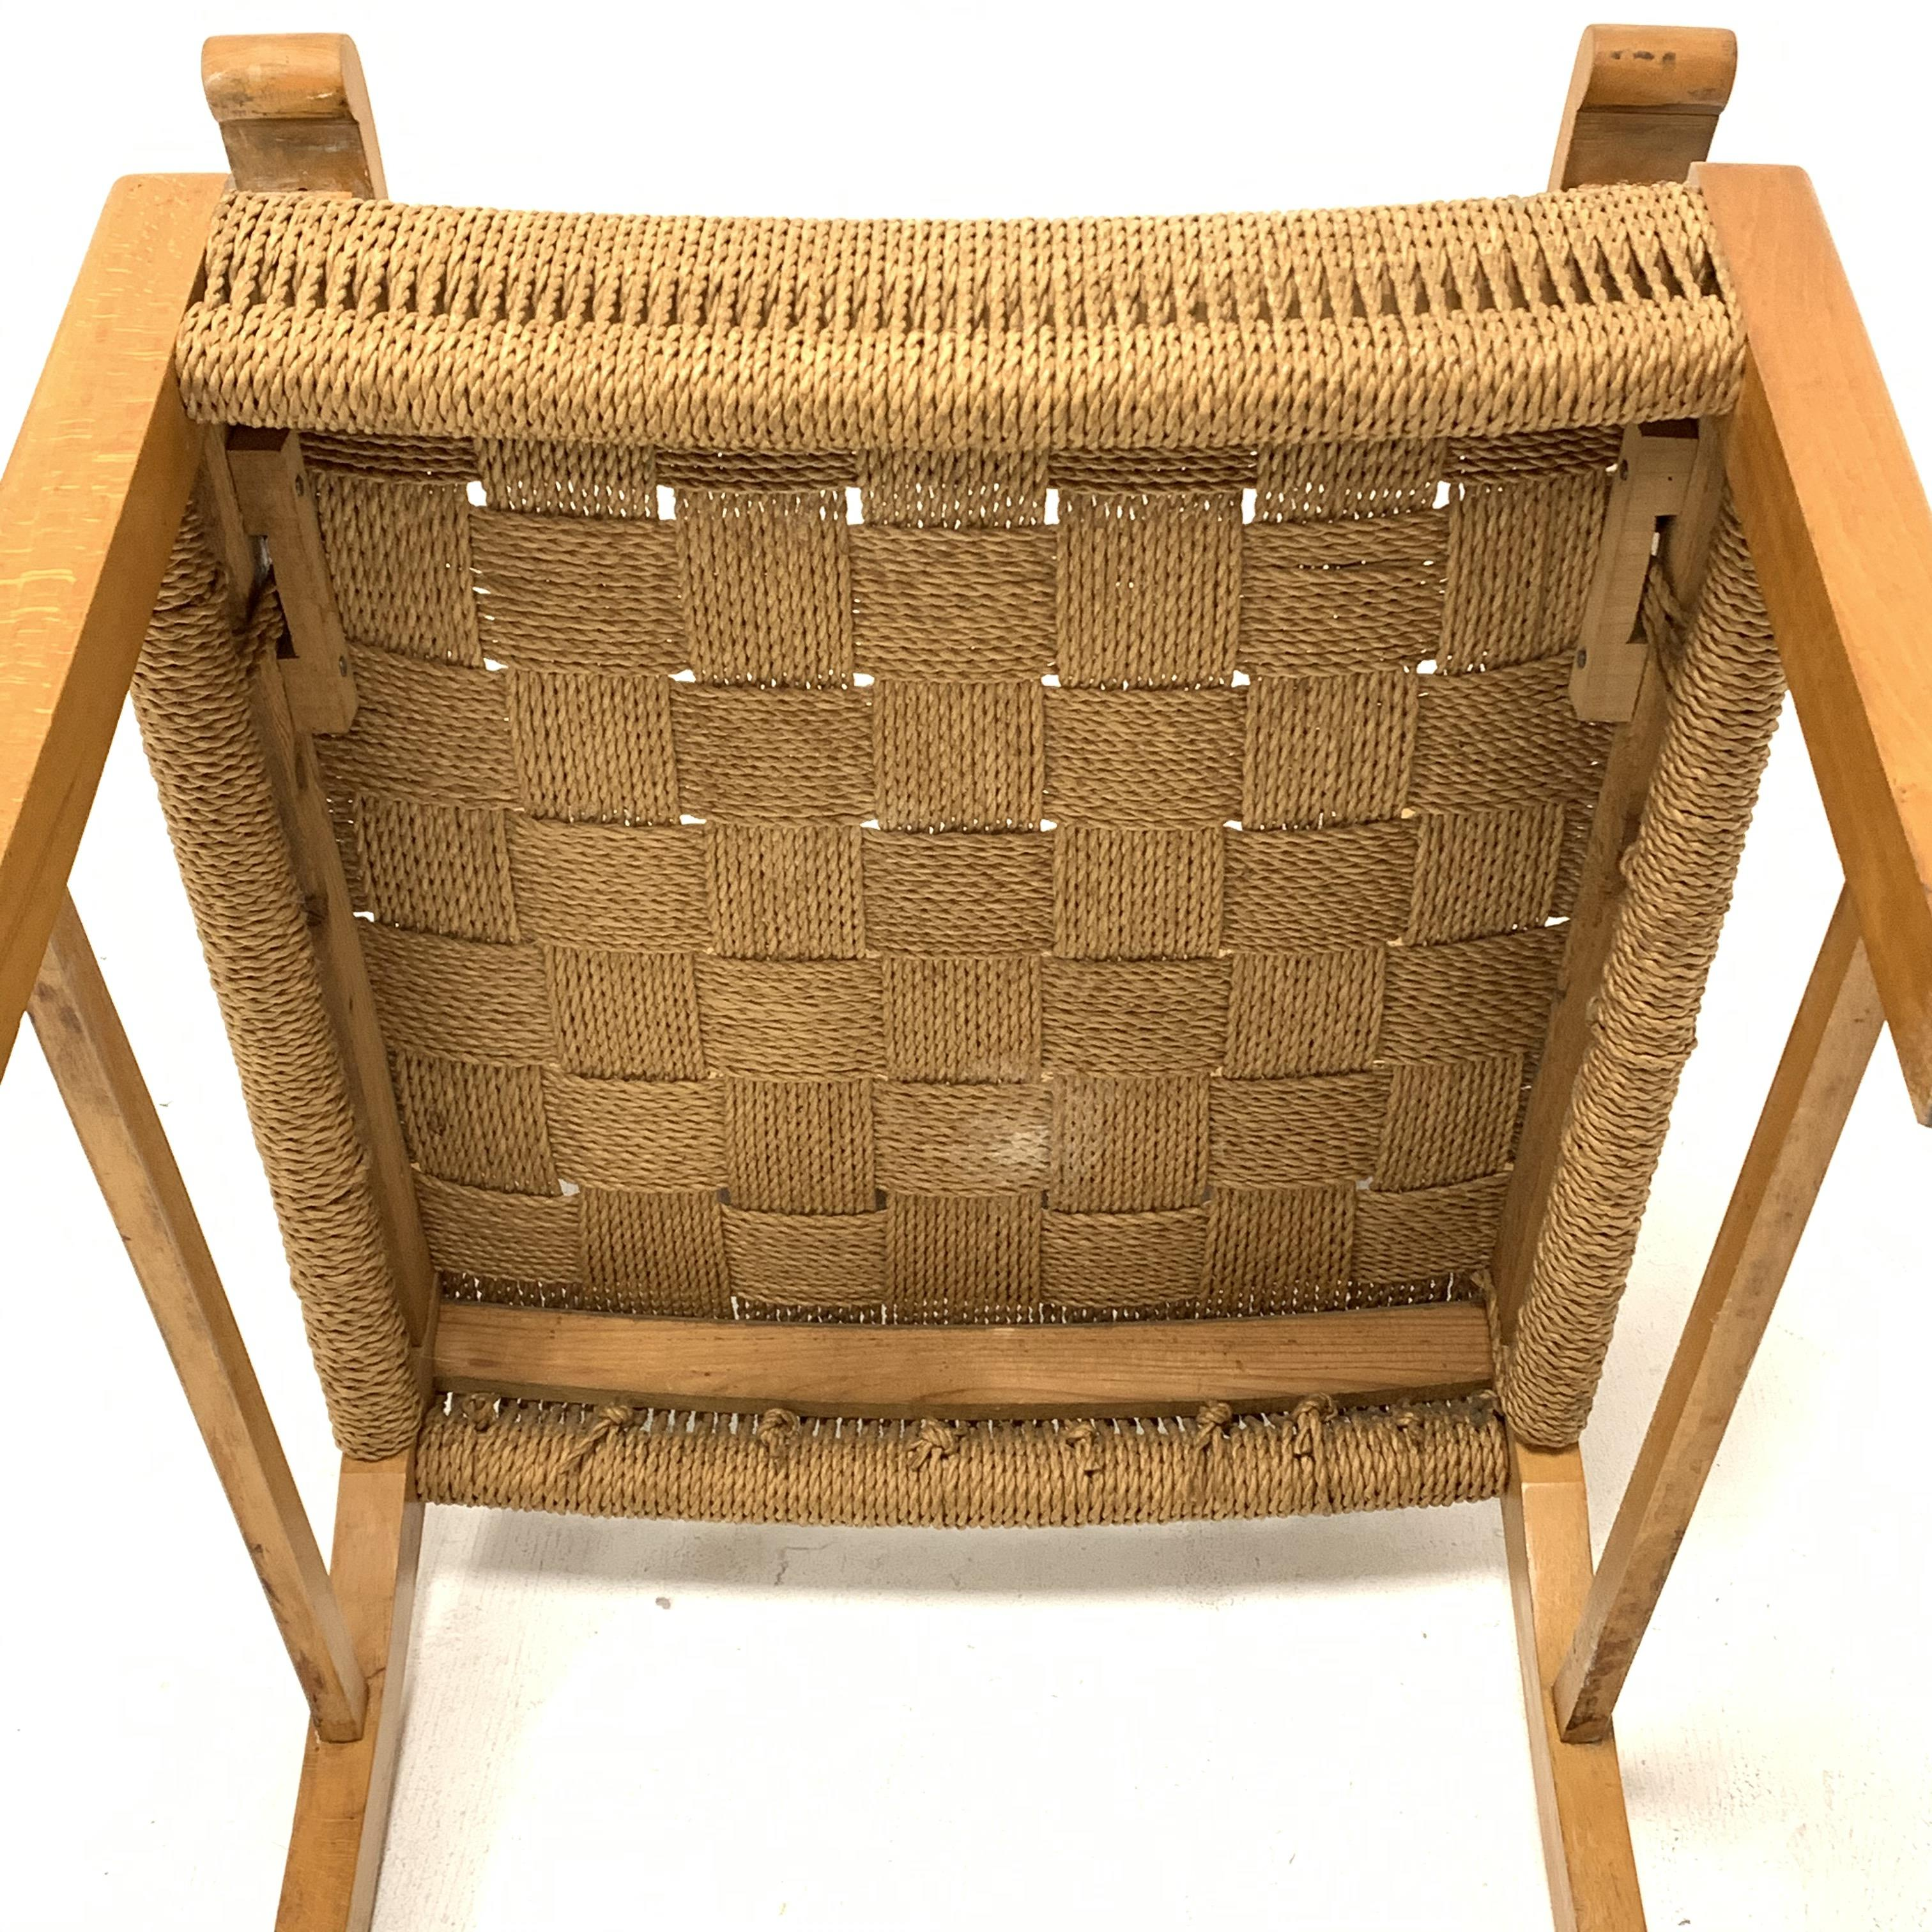 Attributed to Frits Schlegel - Danish beech and cord lounge chair, circa. 1940s, W60cm - Image 5 of 5